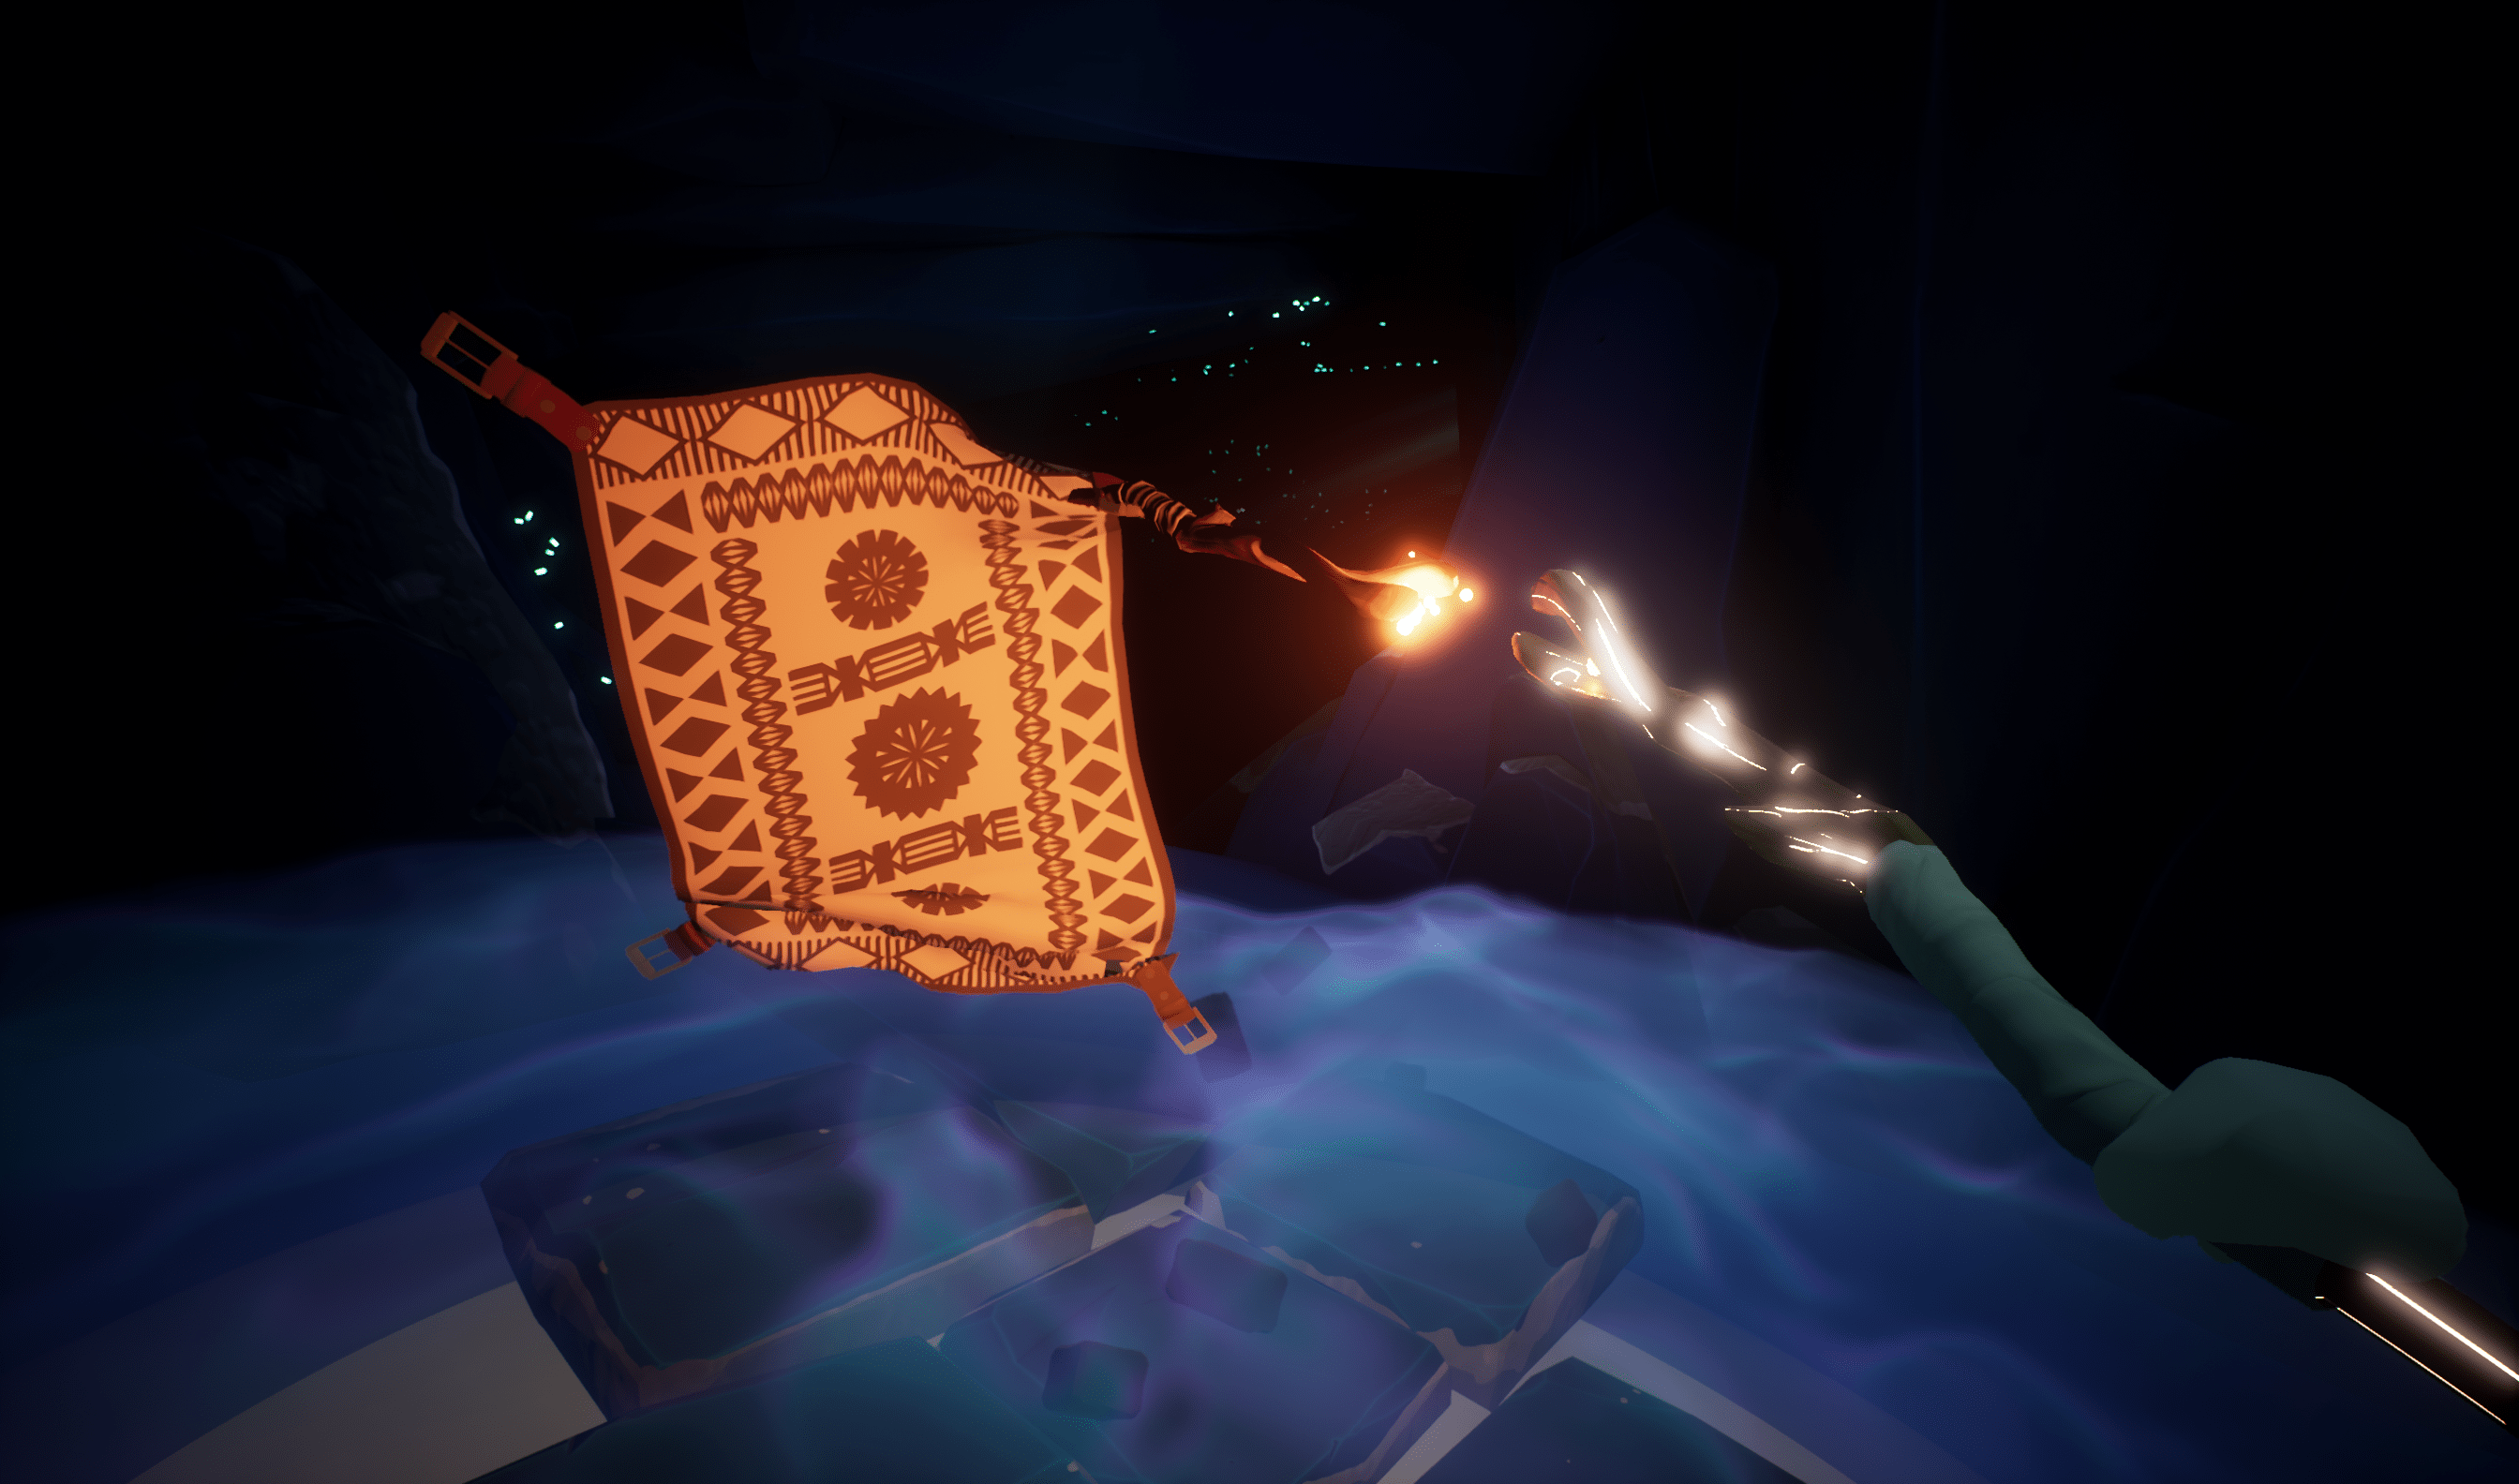 Screenshot of magic carpet interactions in S1T2's Beyond the Stars virtual reality experience